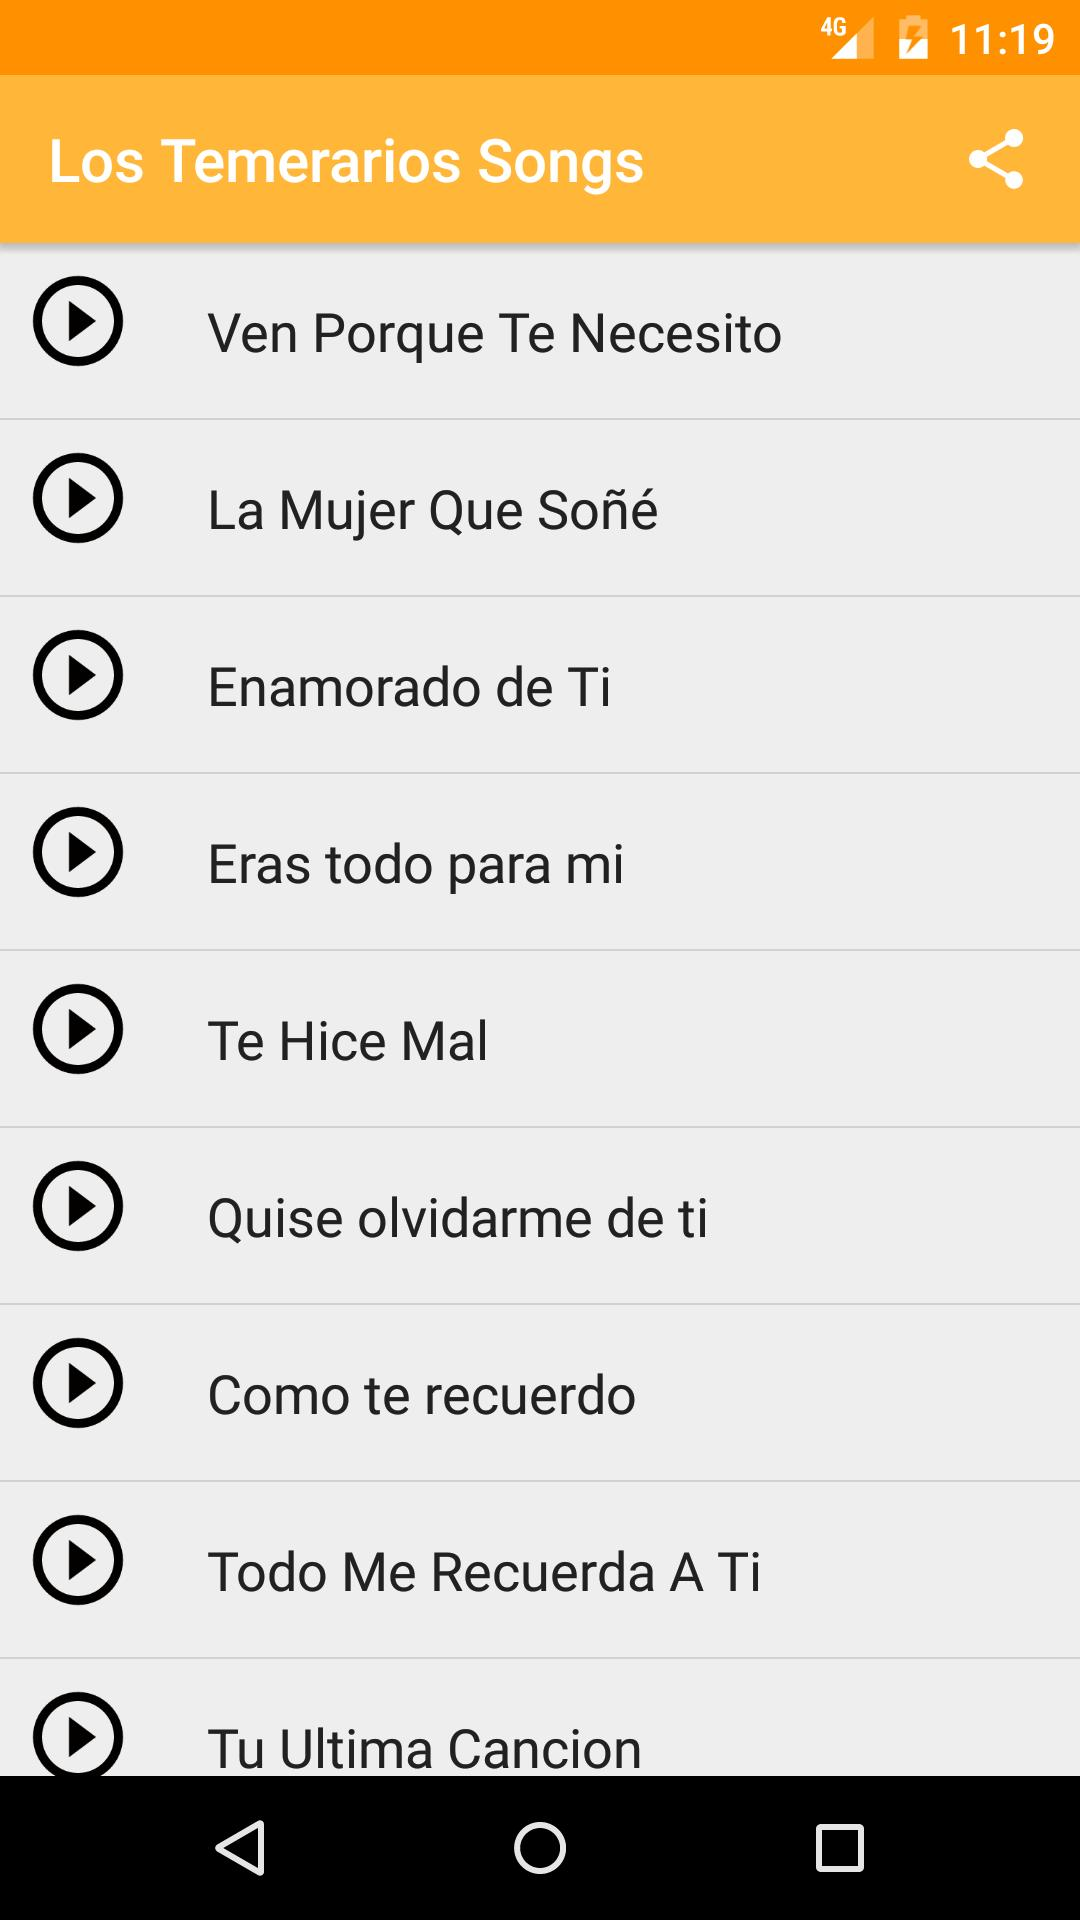 Los Temerarios Mix 70 Exitos For Android Apk Download